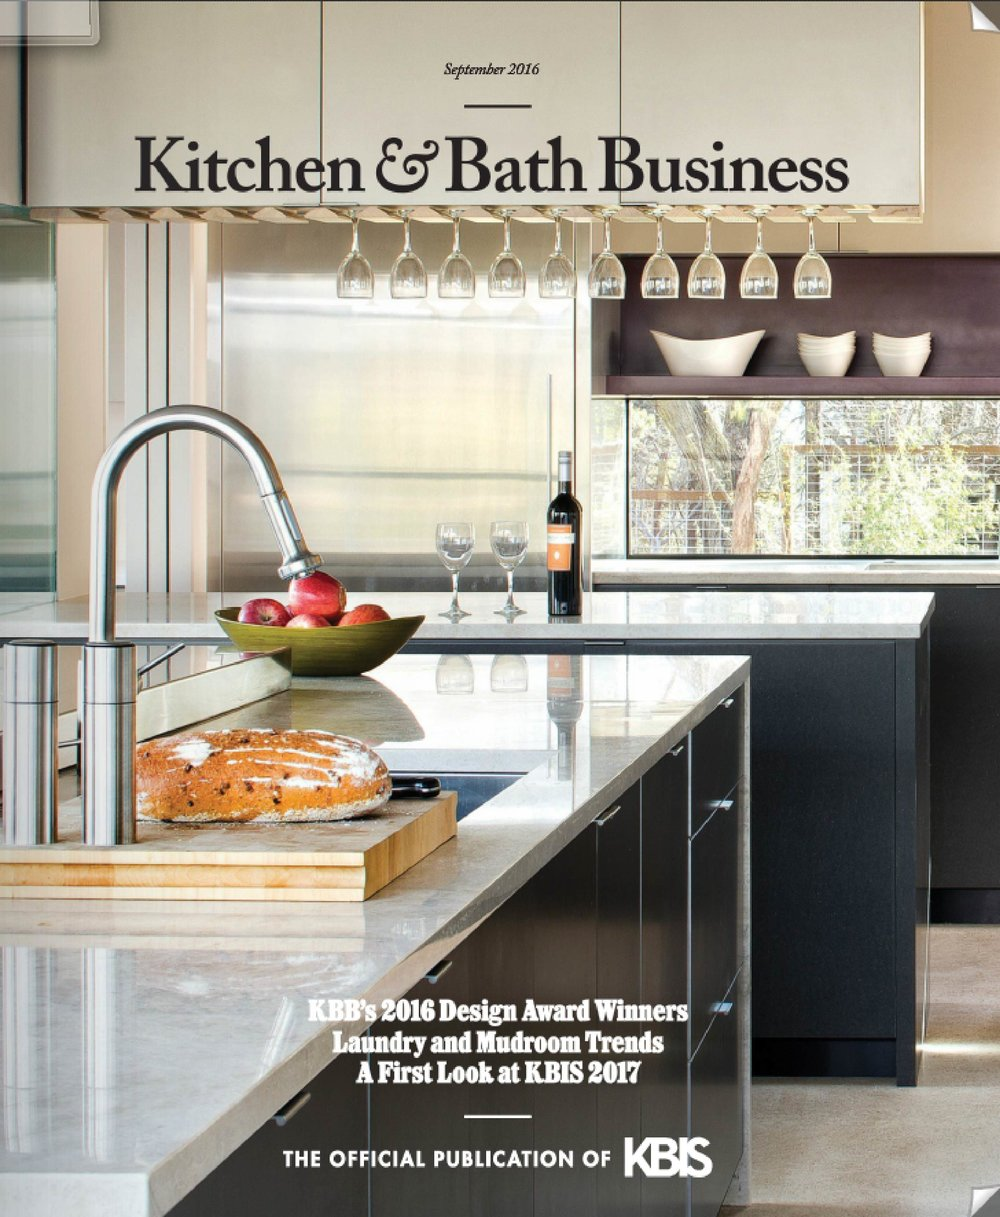 Kitchen & Bath Business Sept. 2016